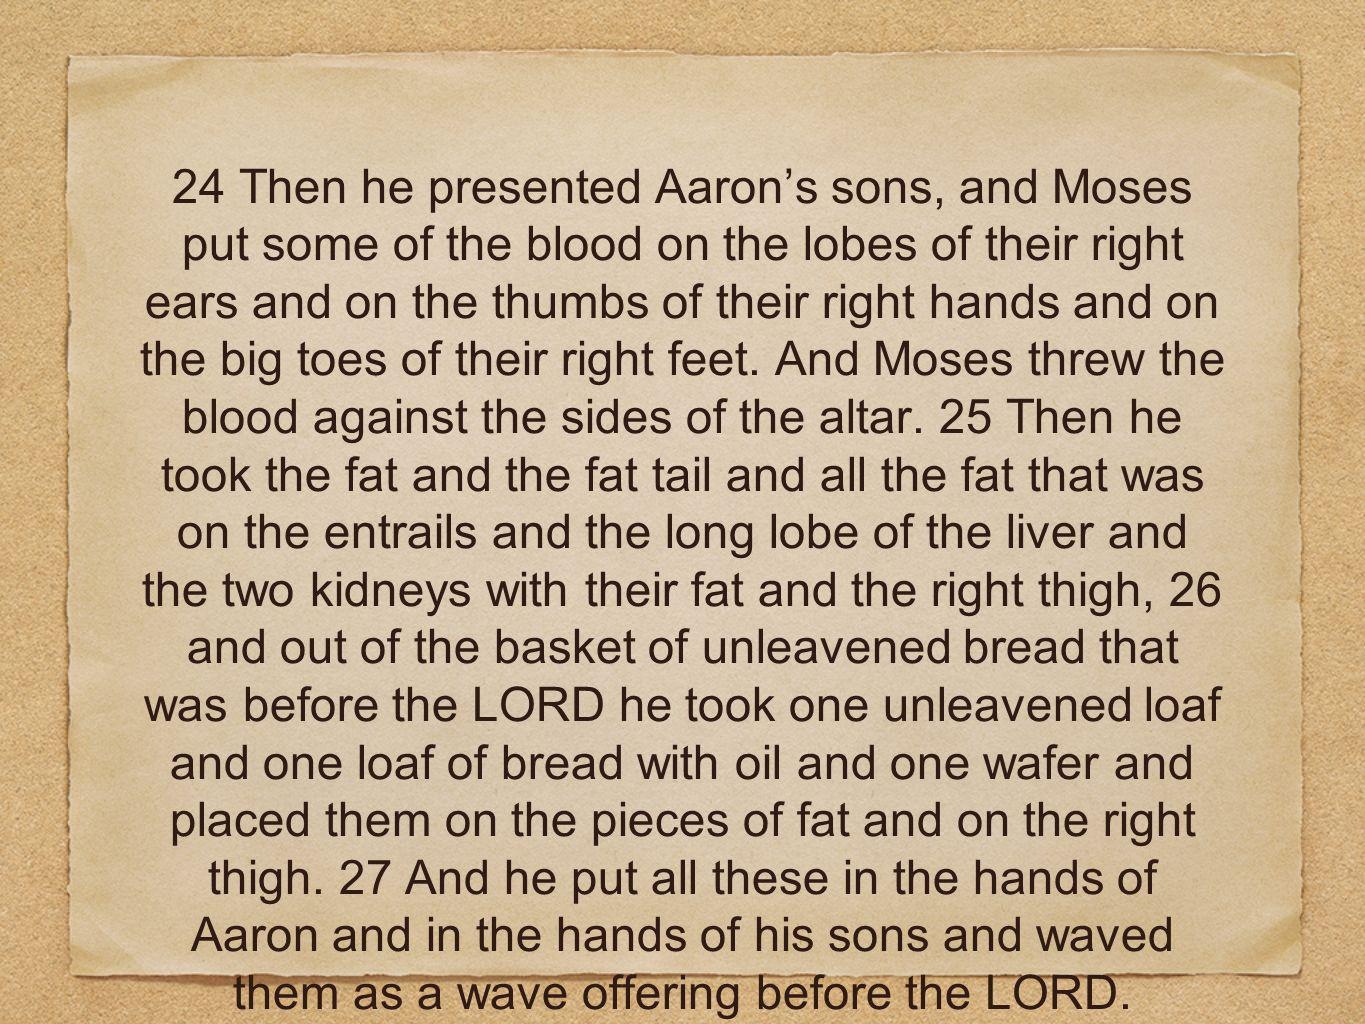 24 Then he presented Aaron's sons, and Moses put some of the blood on the lobes of their right ears and on the thumbs of their right hands and on the big toes of their right feet.